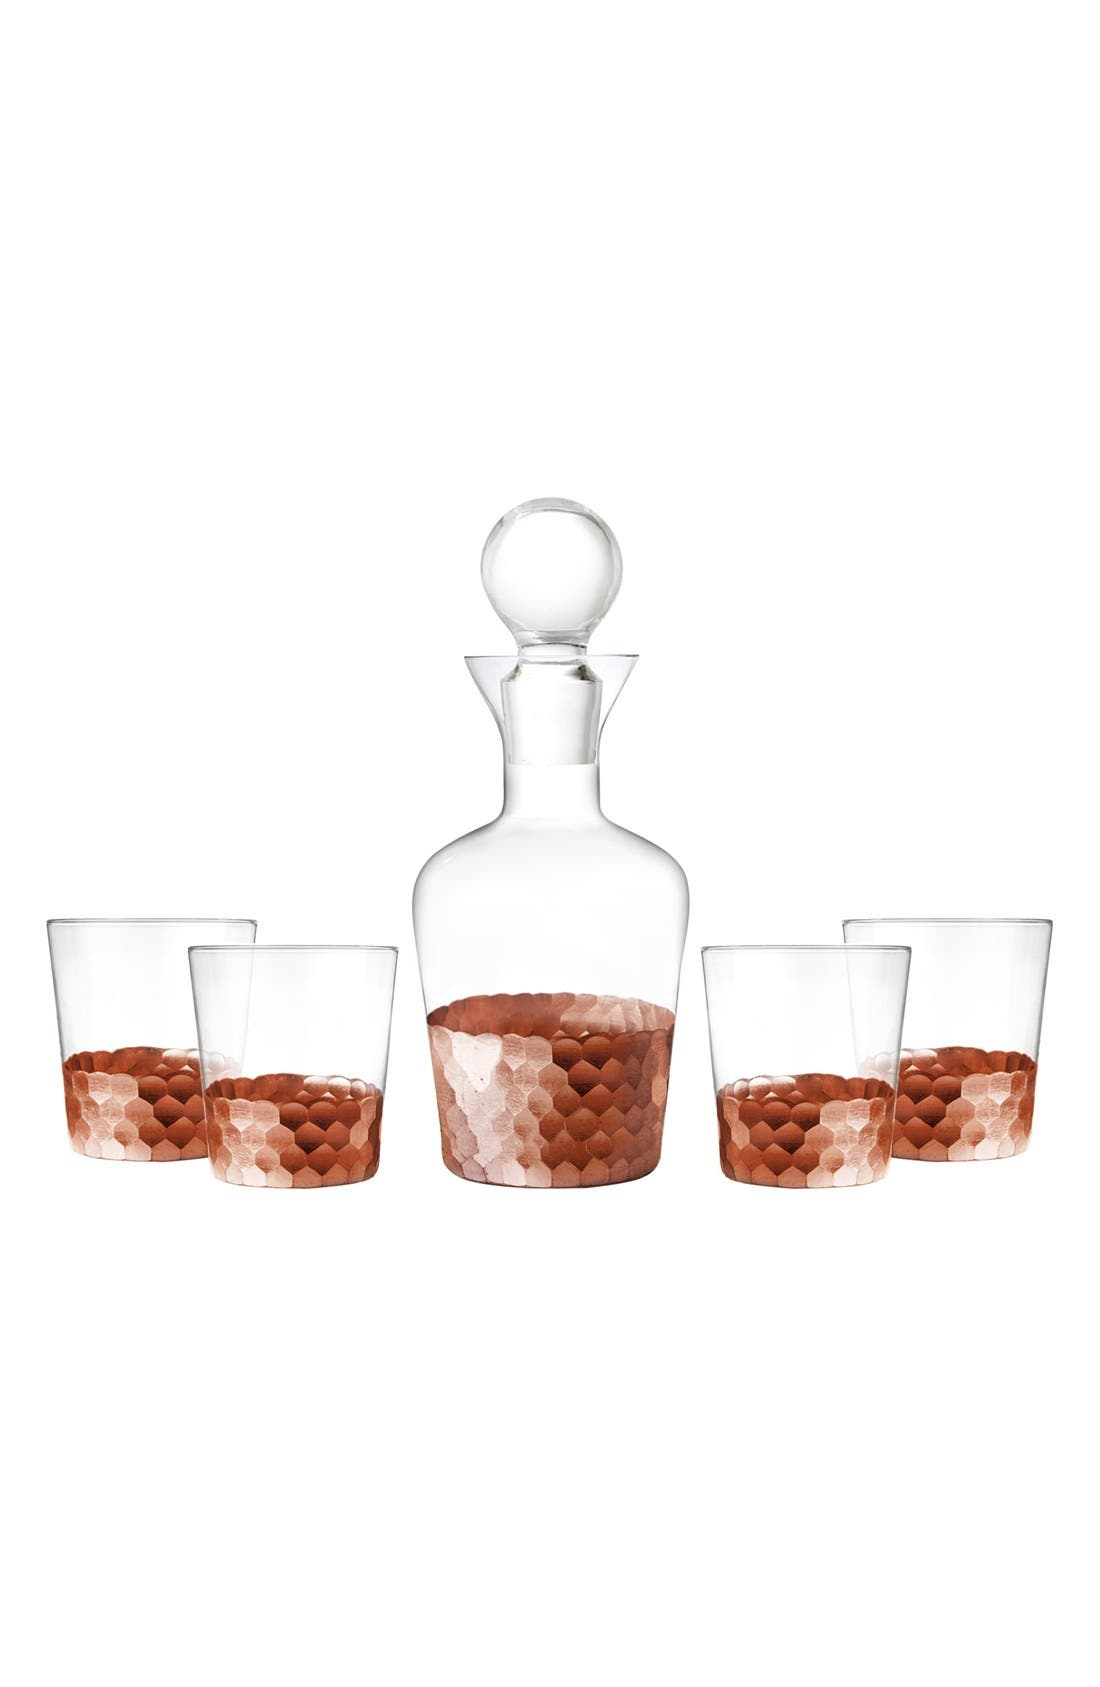 Alternate Image 1 Selected - American Atelier 'Daphne' 5-Piece Decanter & Whiskey Glasses Set